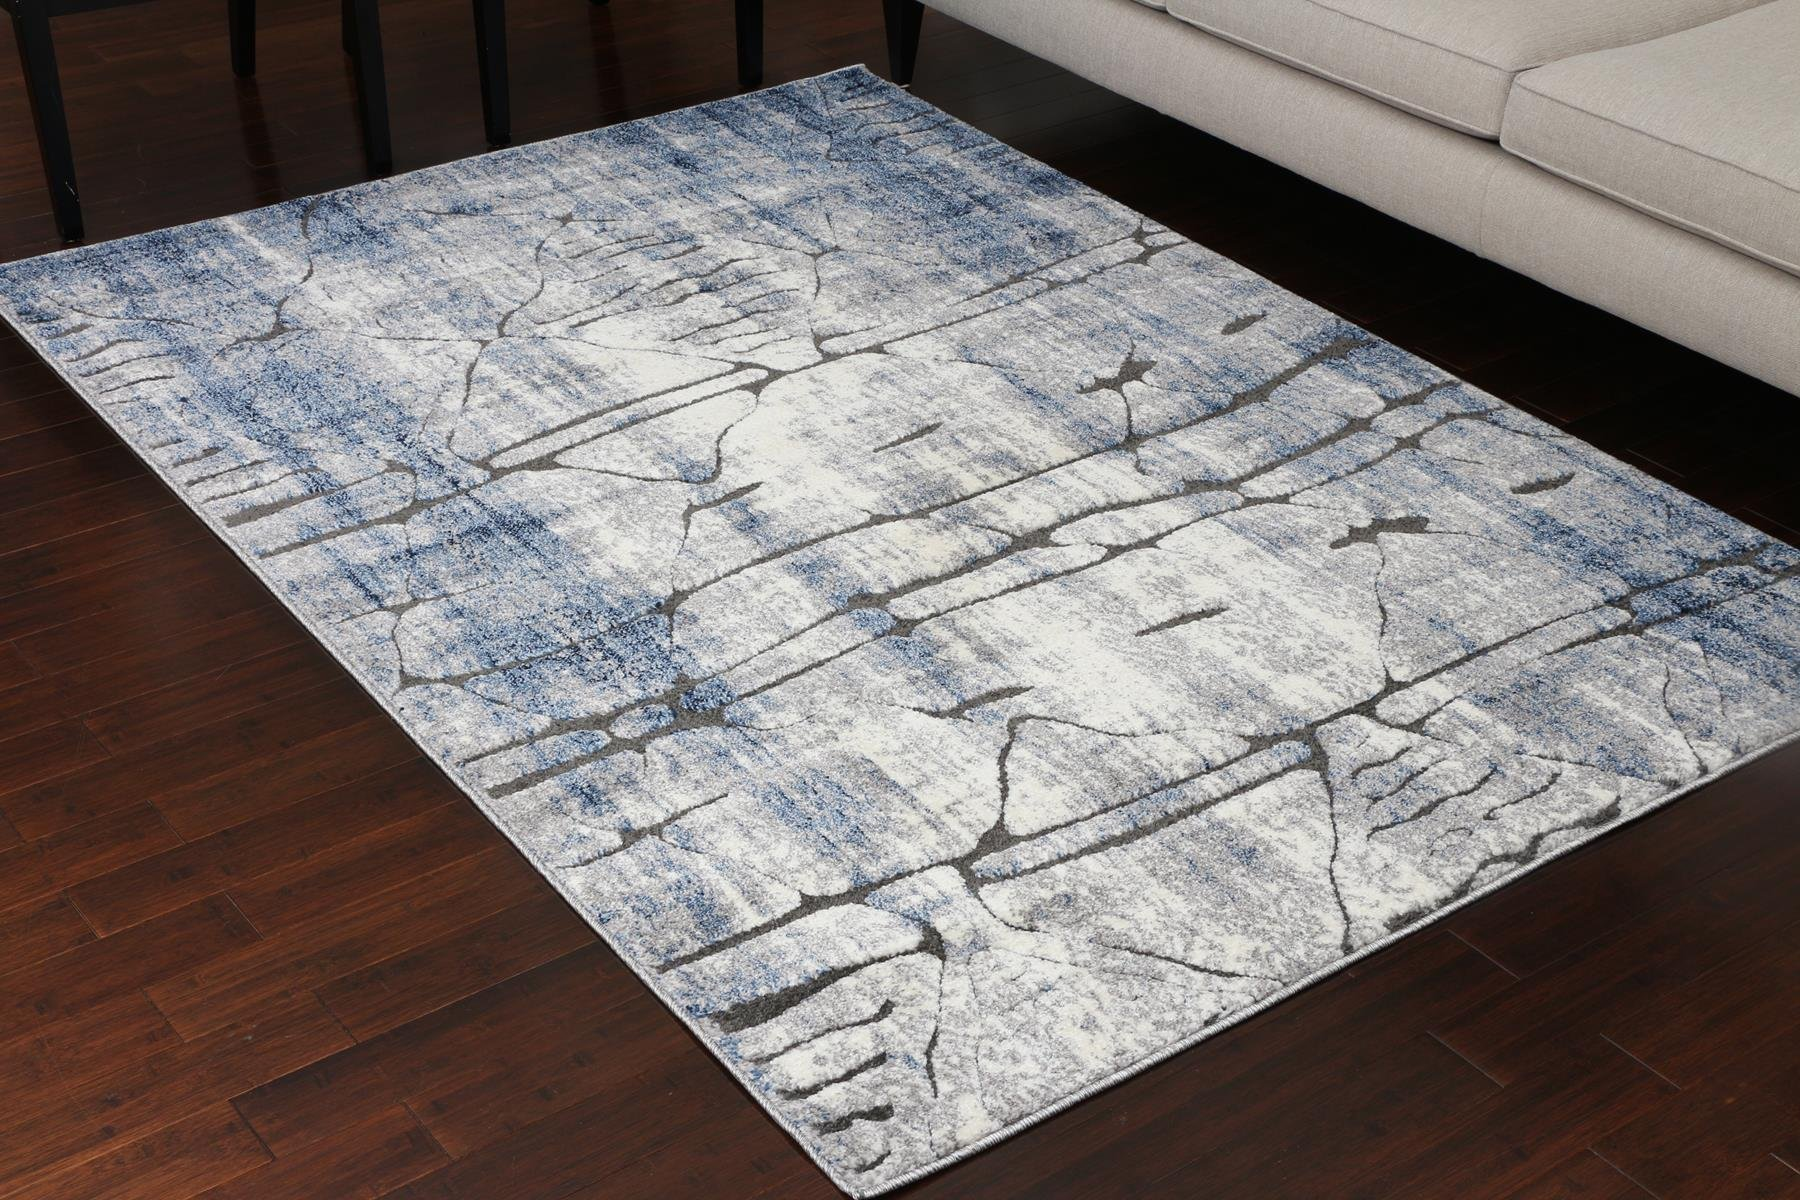 Miami Textured 3-D Carved Double Point High Density Thick Collection Oriental Carpet Area Rug Rugs Silver Grey Blue 5070 Anthracite 2x3 2'2x2'7